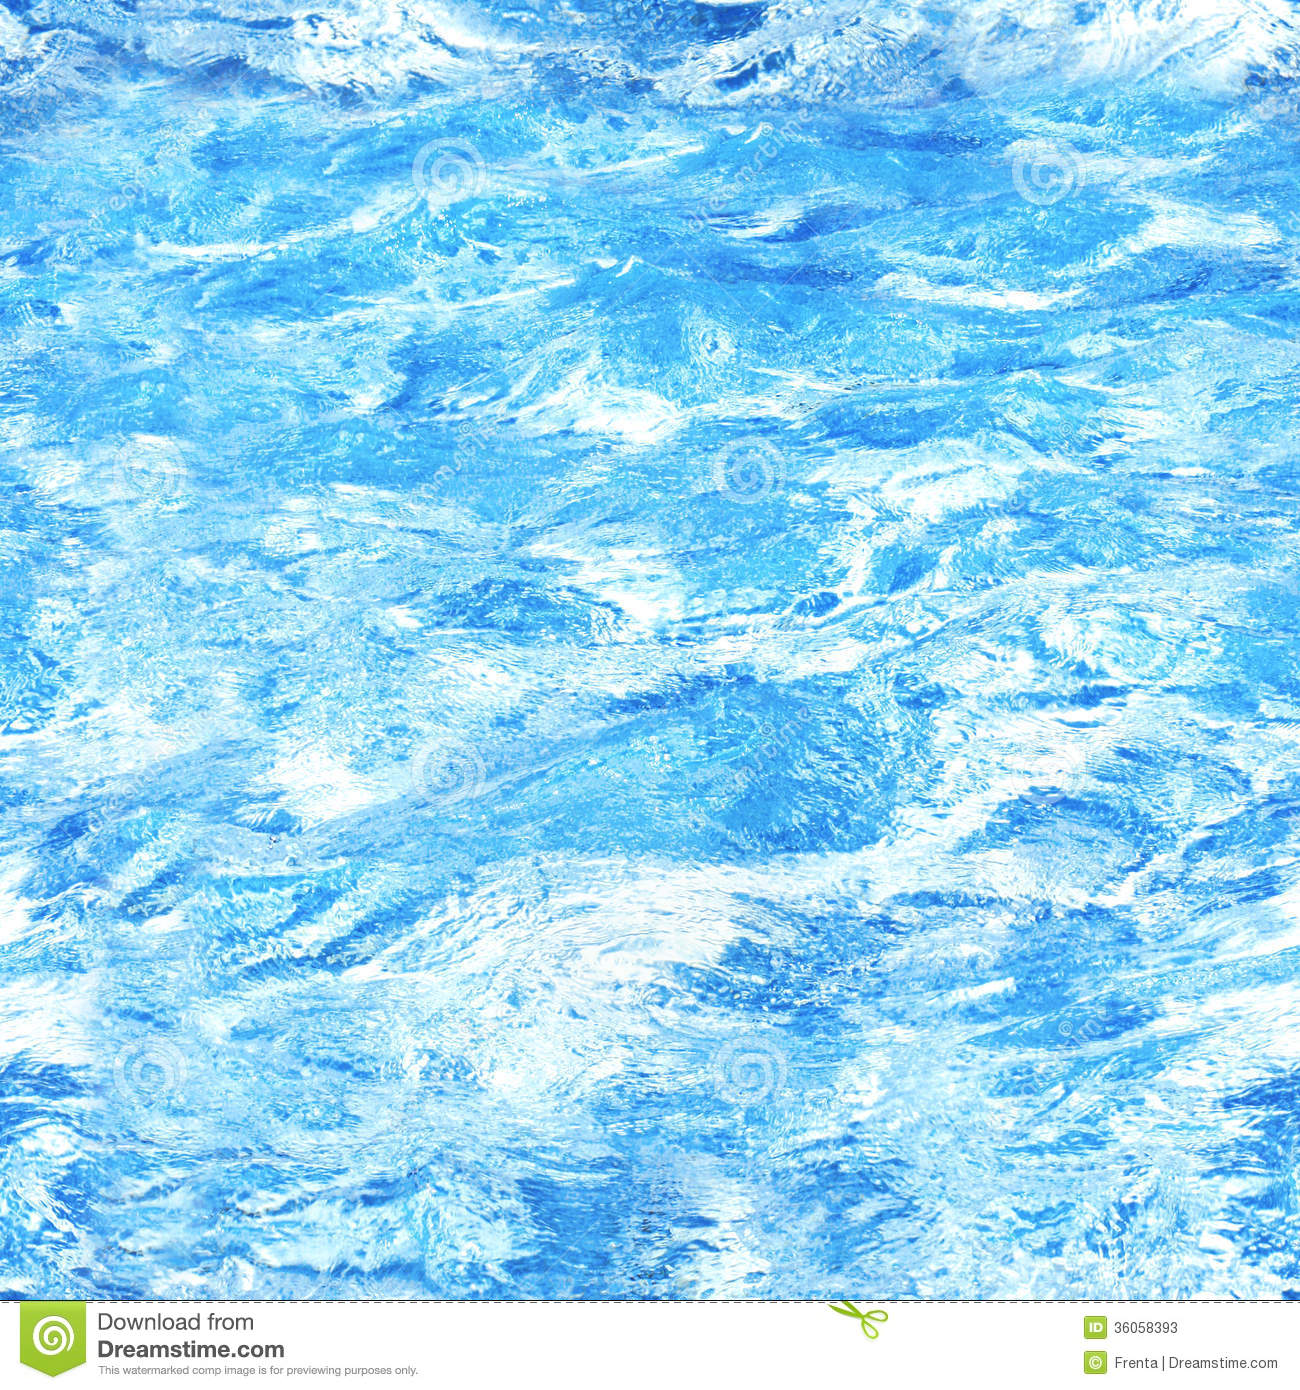 Swimming Pool Water Texture Seamless Seamless Texture Of Water